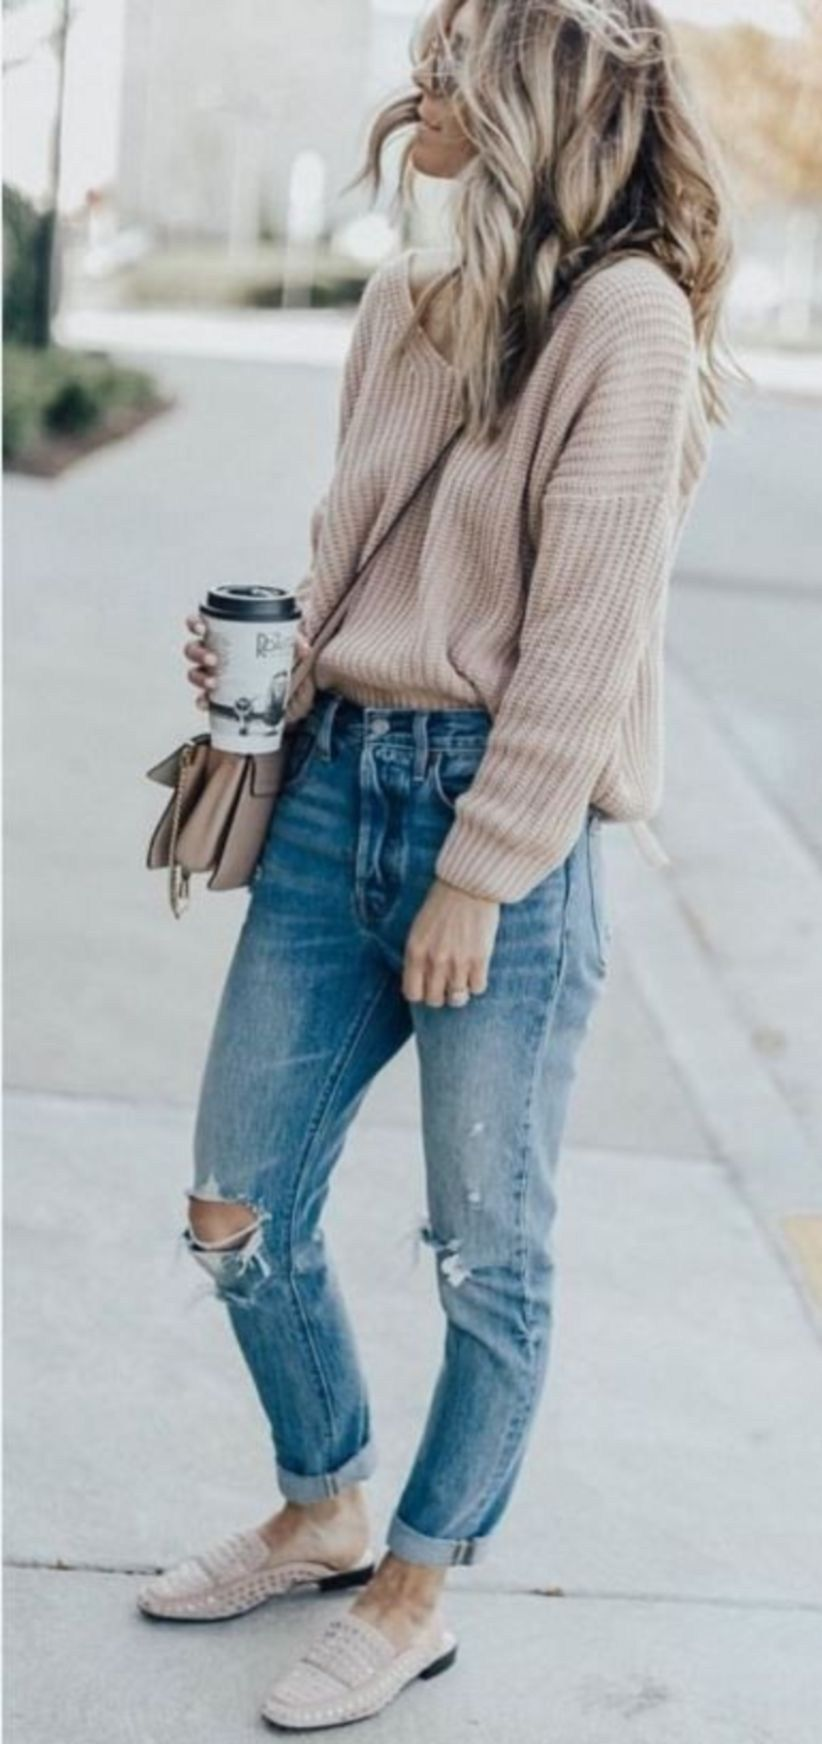 f88d717027 Trendy fall outfit ideas to inspire yourself 91